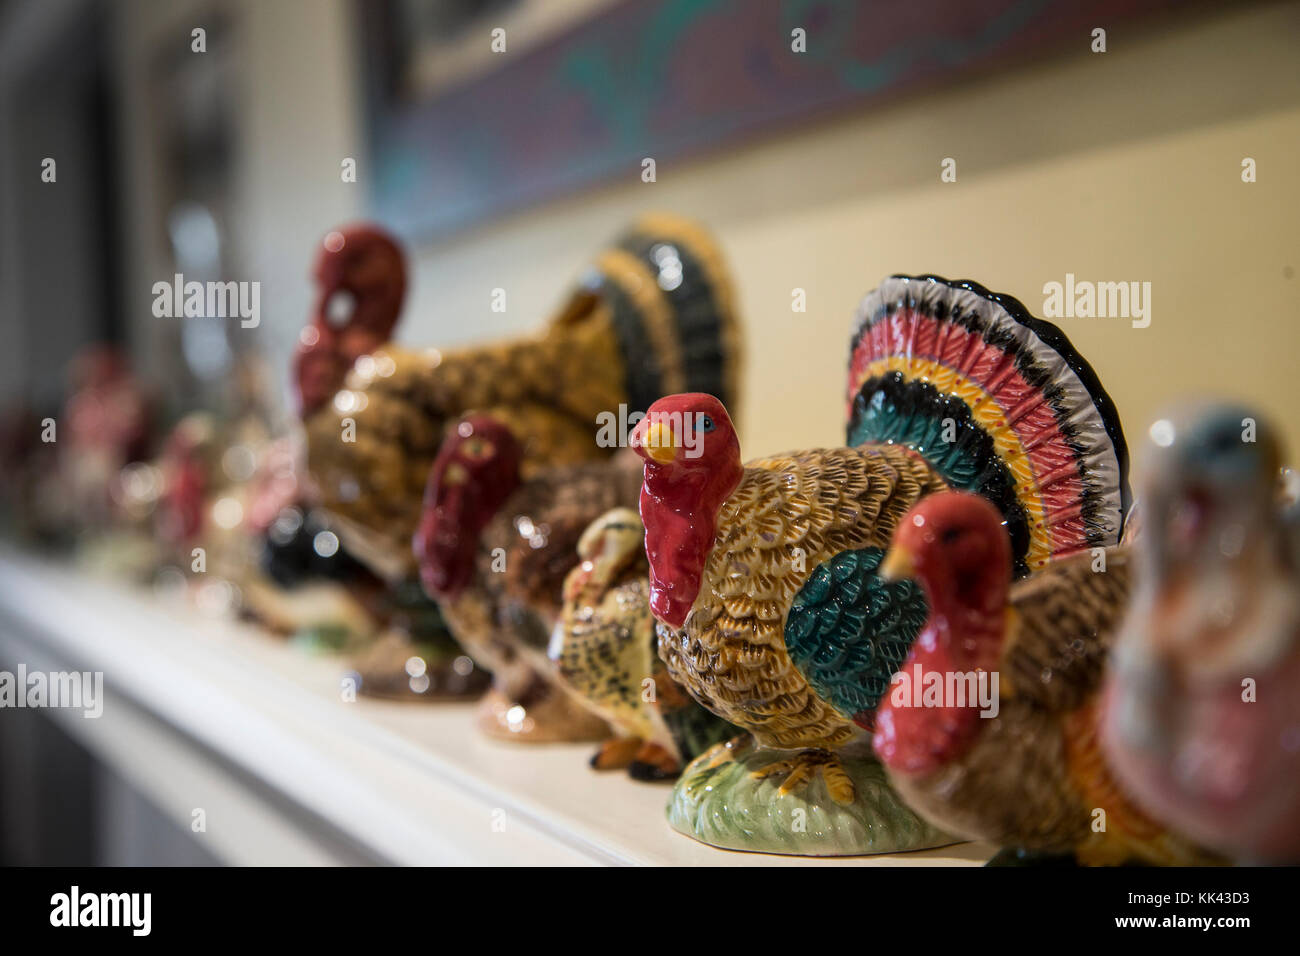 Ceramic turkeys on a mantle during Thanksgiving - Stock Image